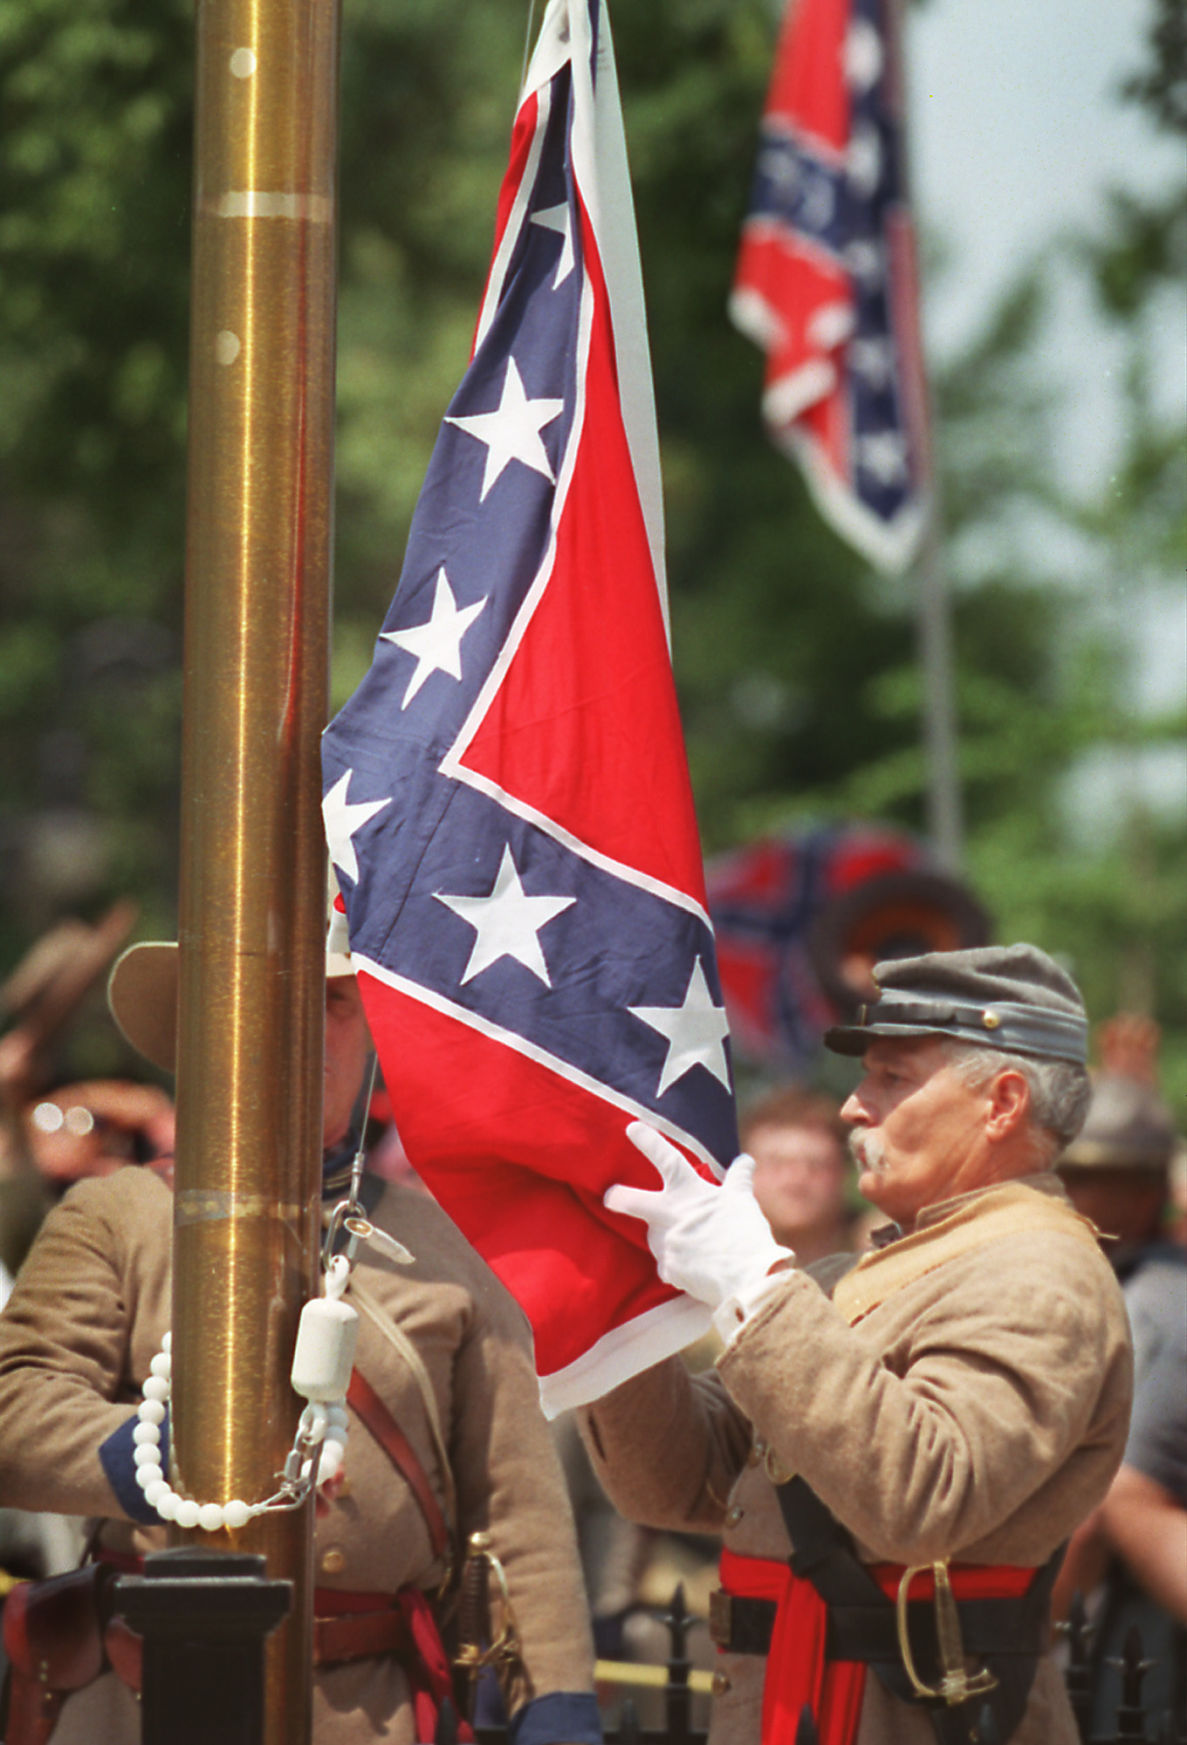 Confederate re-enactors acknowledge flag is likely to come down